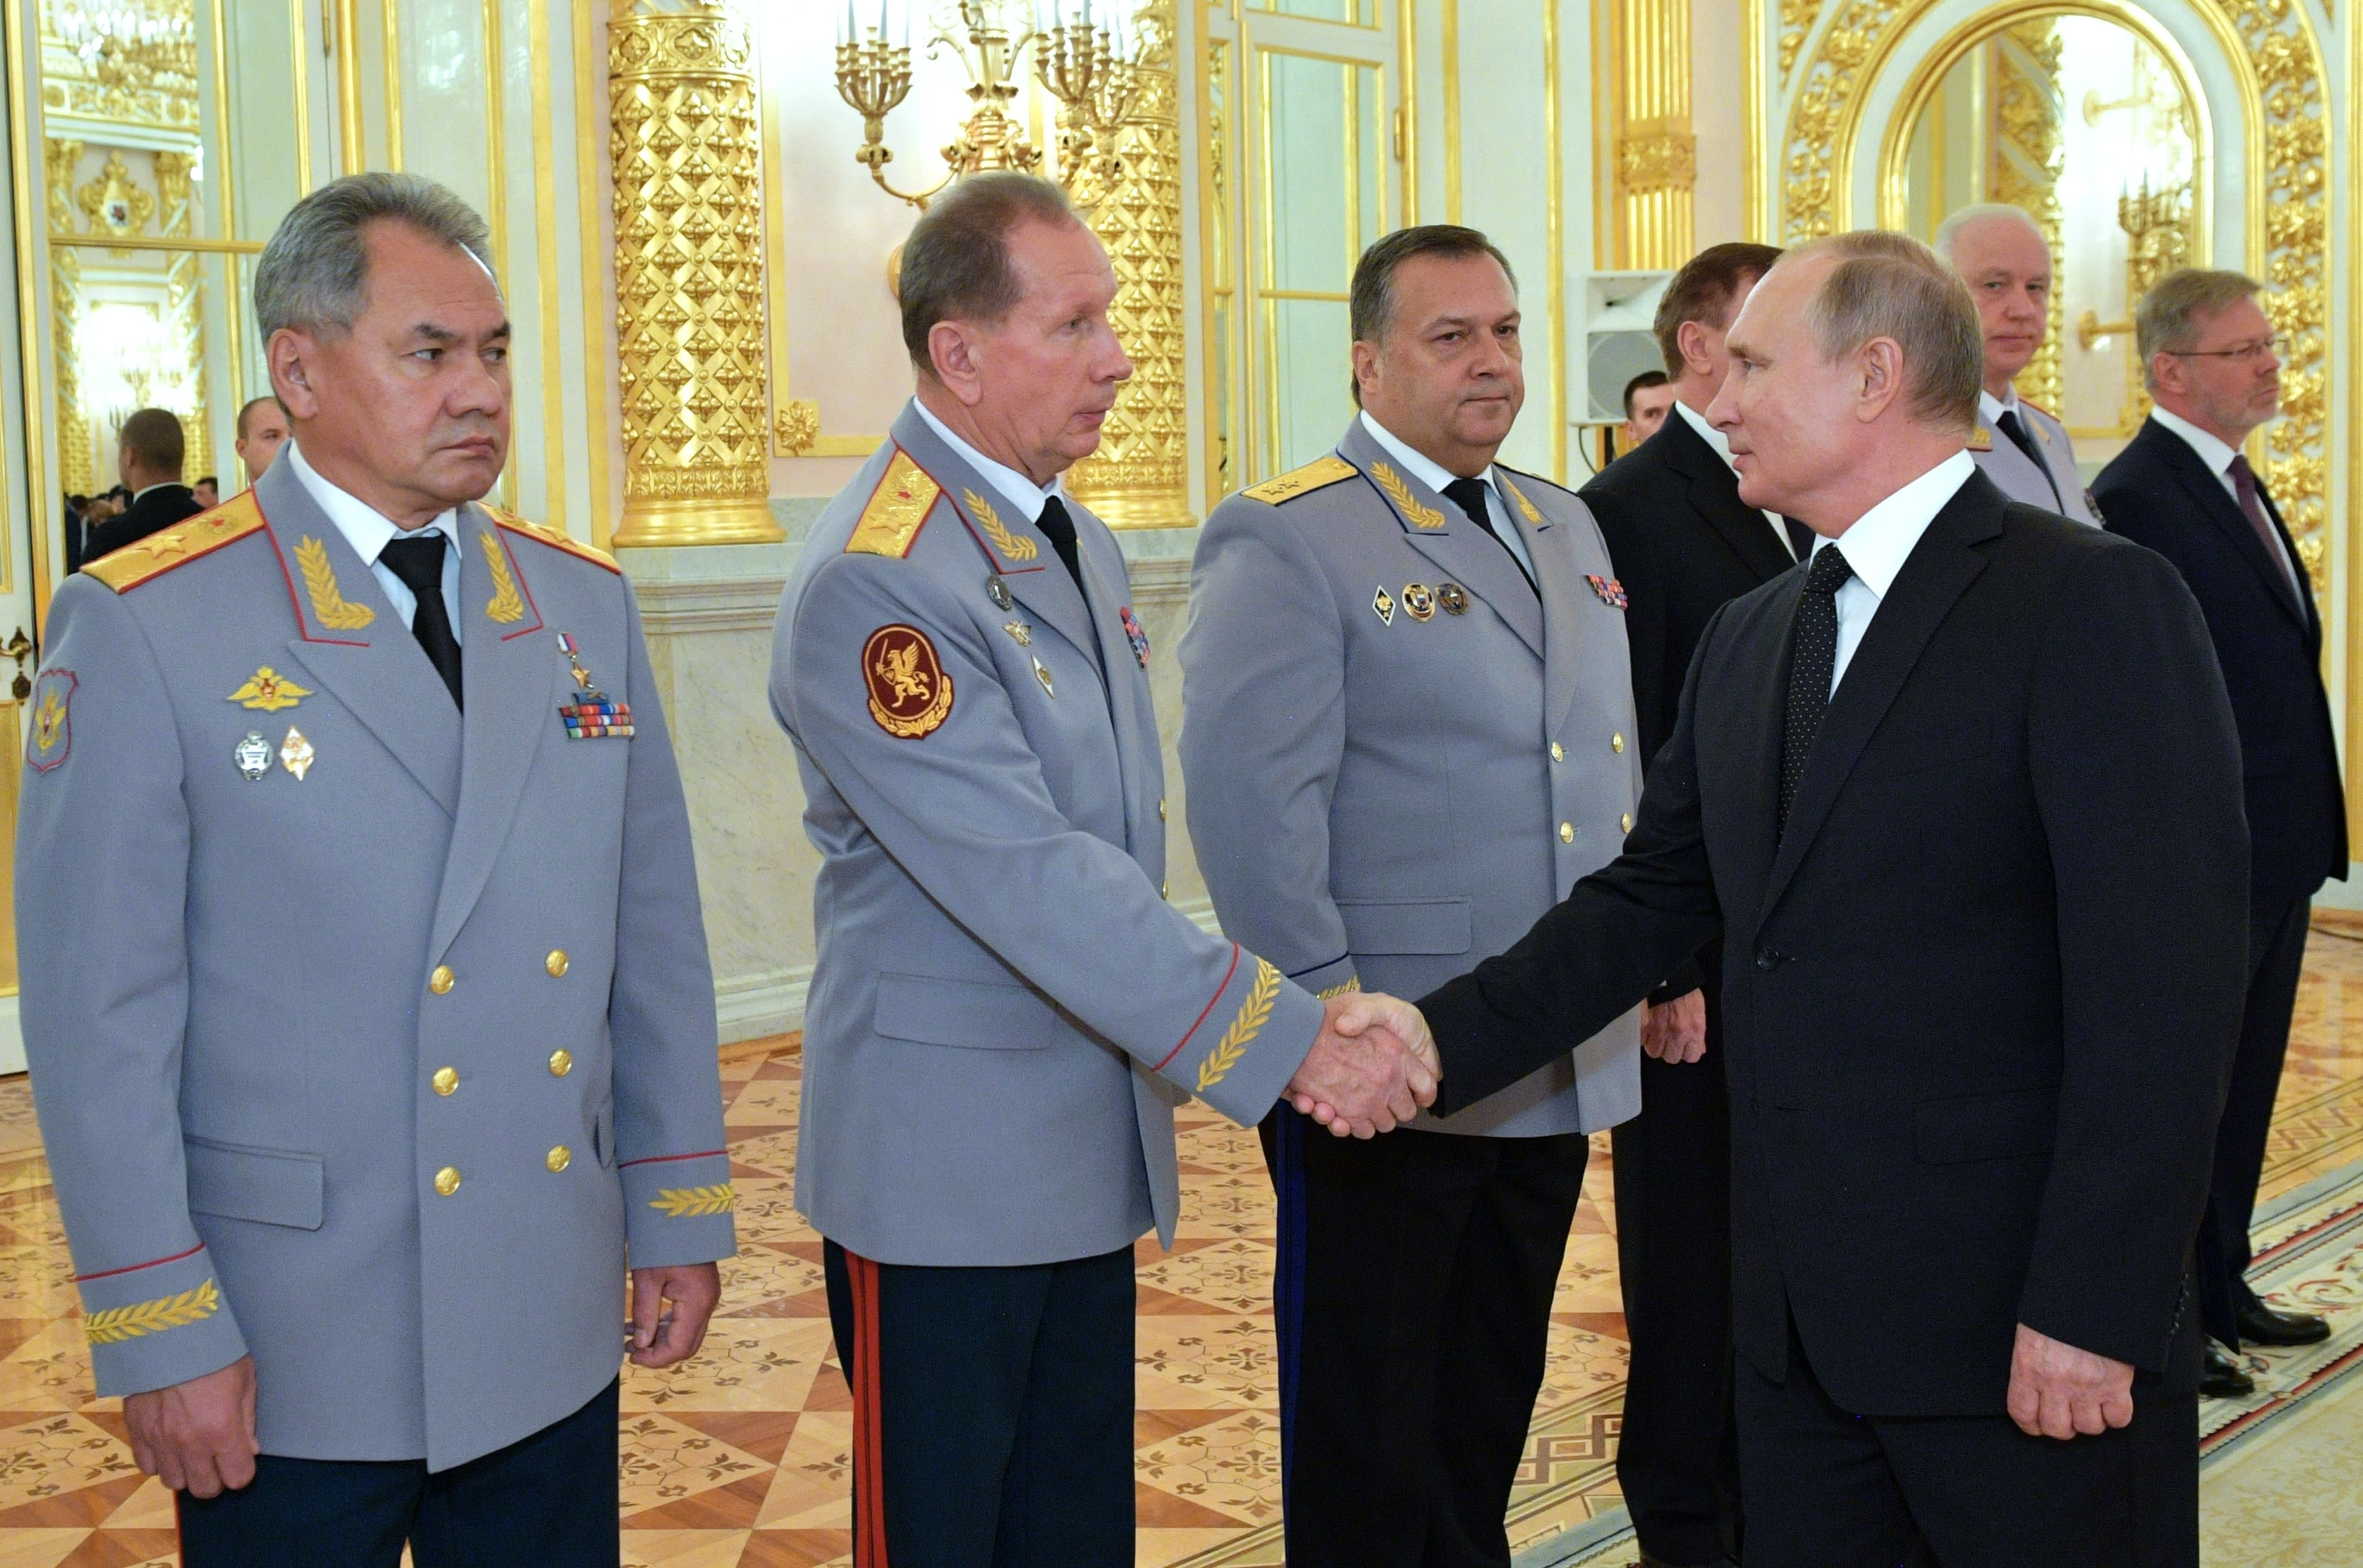 Russian President Vladimir Putin, right, greets Commander-in-Chief of the National Guard troops Viktor Zolotov, second left, Defense Minister Sergei Shoigu, left, and Director of the Federal Security Service Dmitry Kochnev, right, during a meeting with top military officers and law enforcement officials in the Kremlin in Moscow, Russia, Thursday, Oct. 25, 2018. Putin said that Russia has adhered to its obligations in the arms control sphere, but noted that Russian arsenals will be modernized to ensure protection from any potential threats. (Alexei Nikolsky, Sputnik, Kremlin Pool Photo via AP)